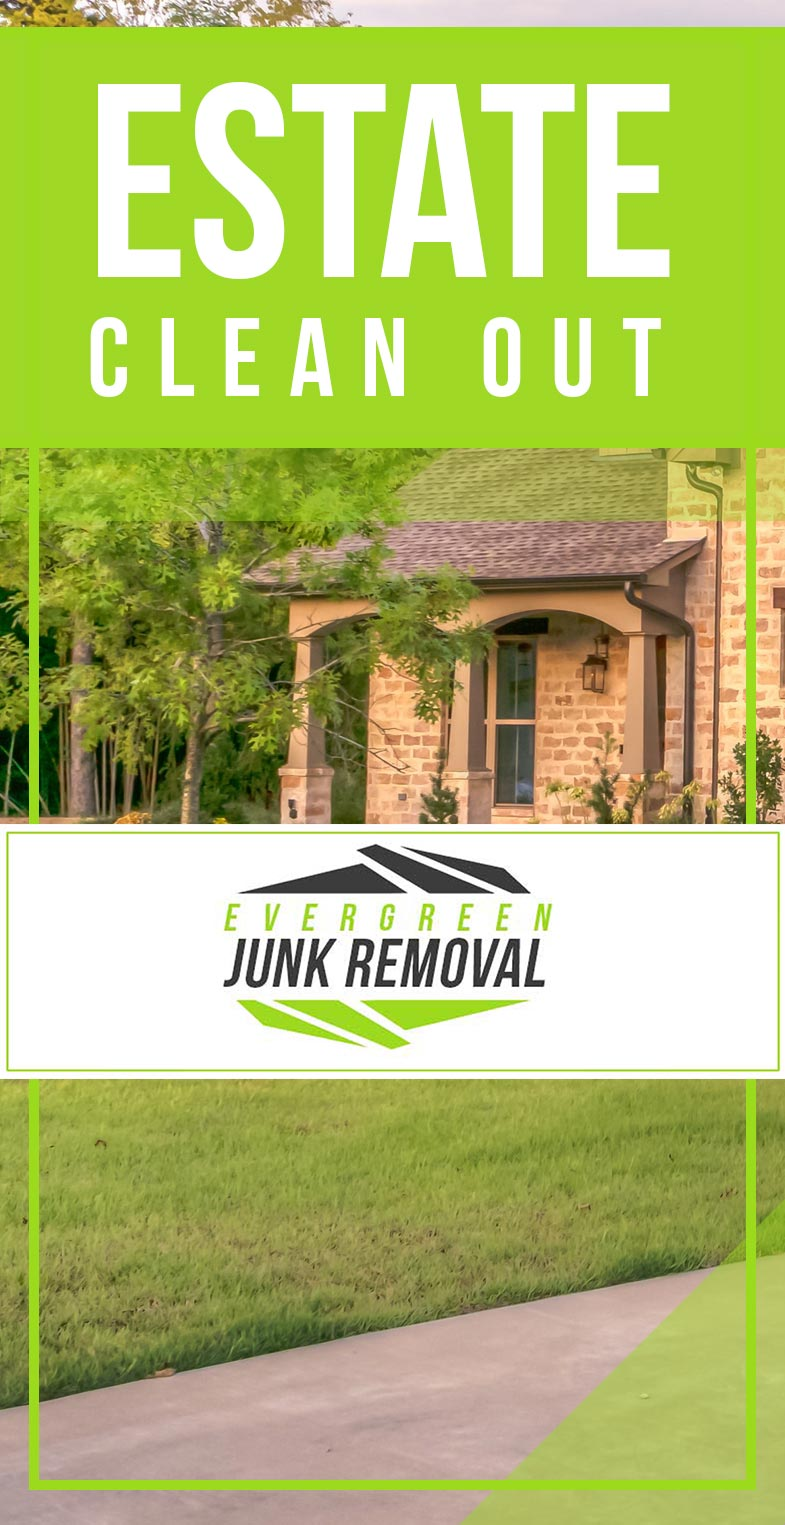 Montery Park Property Clean Out